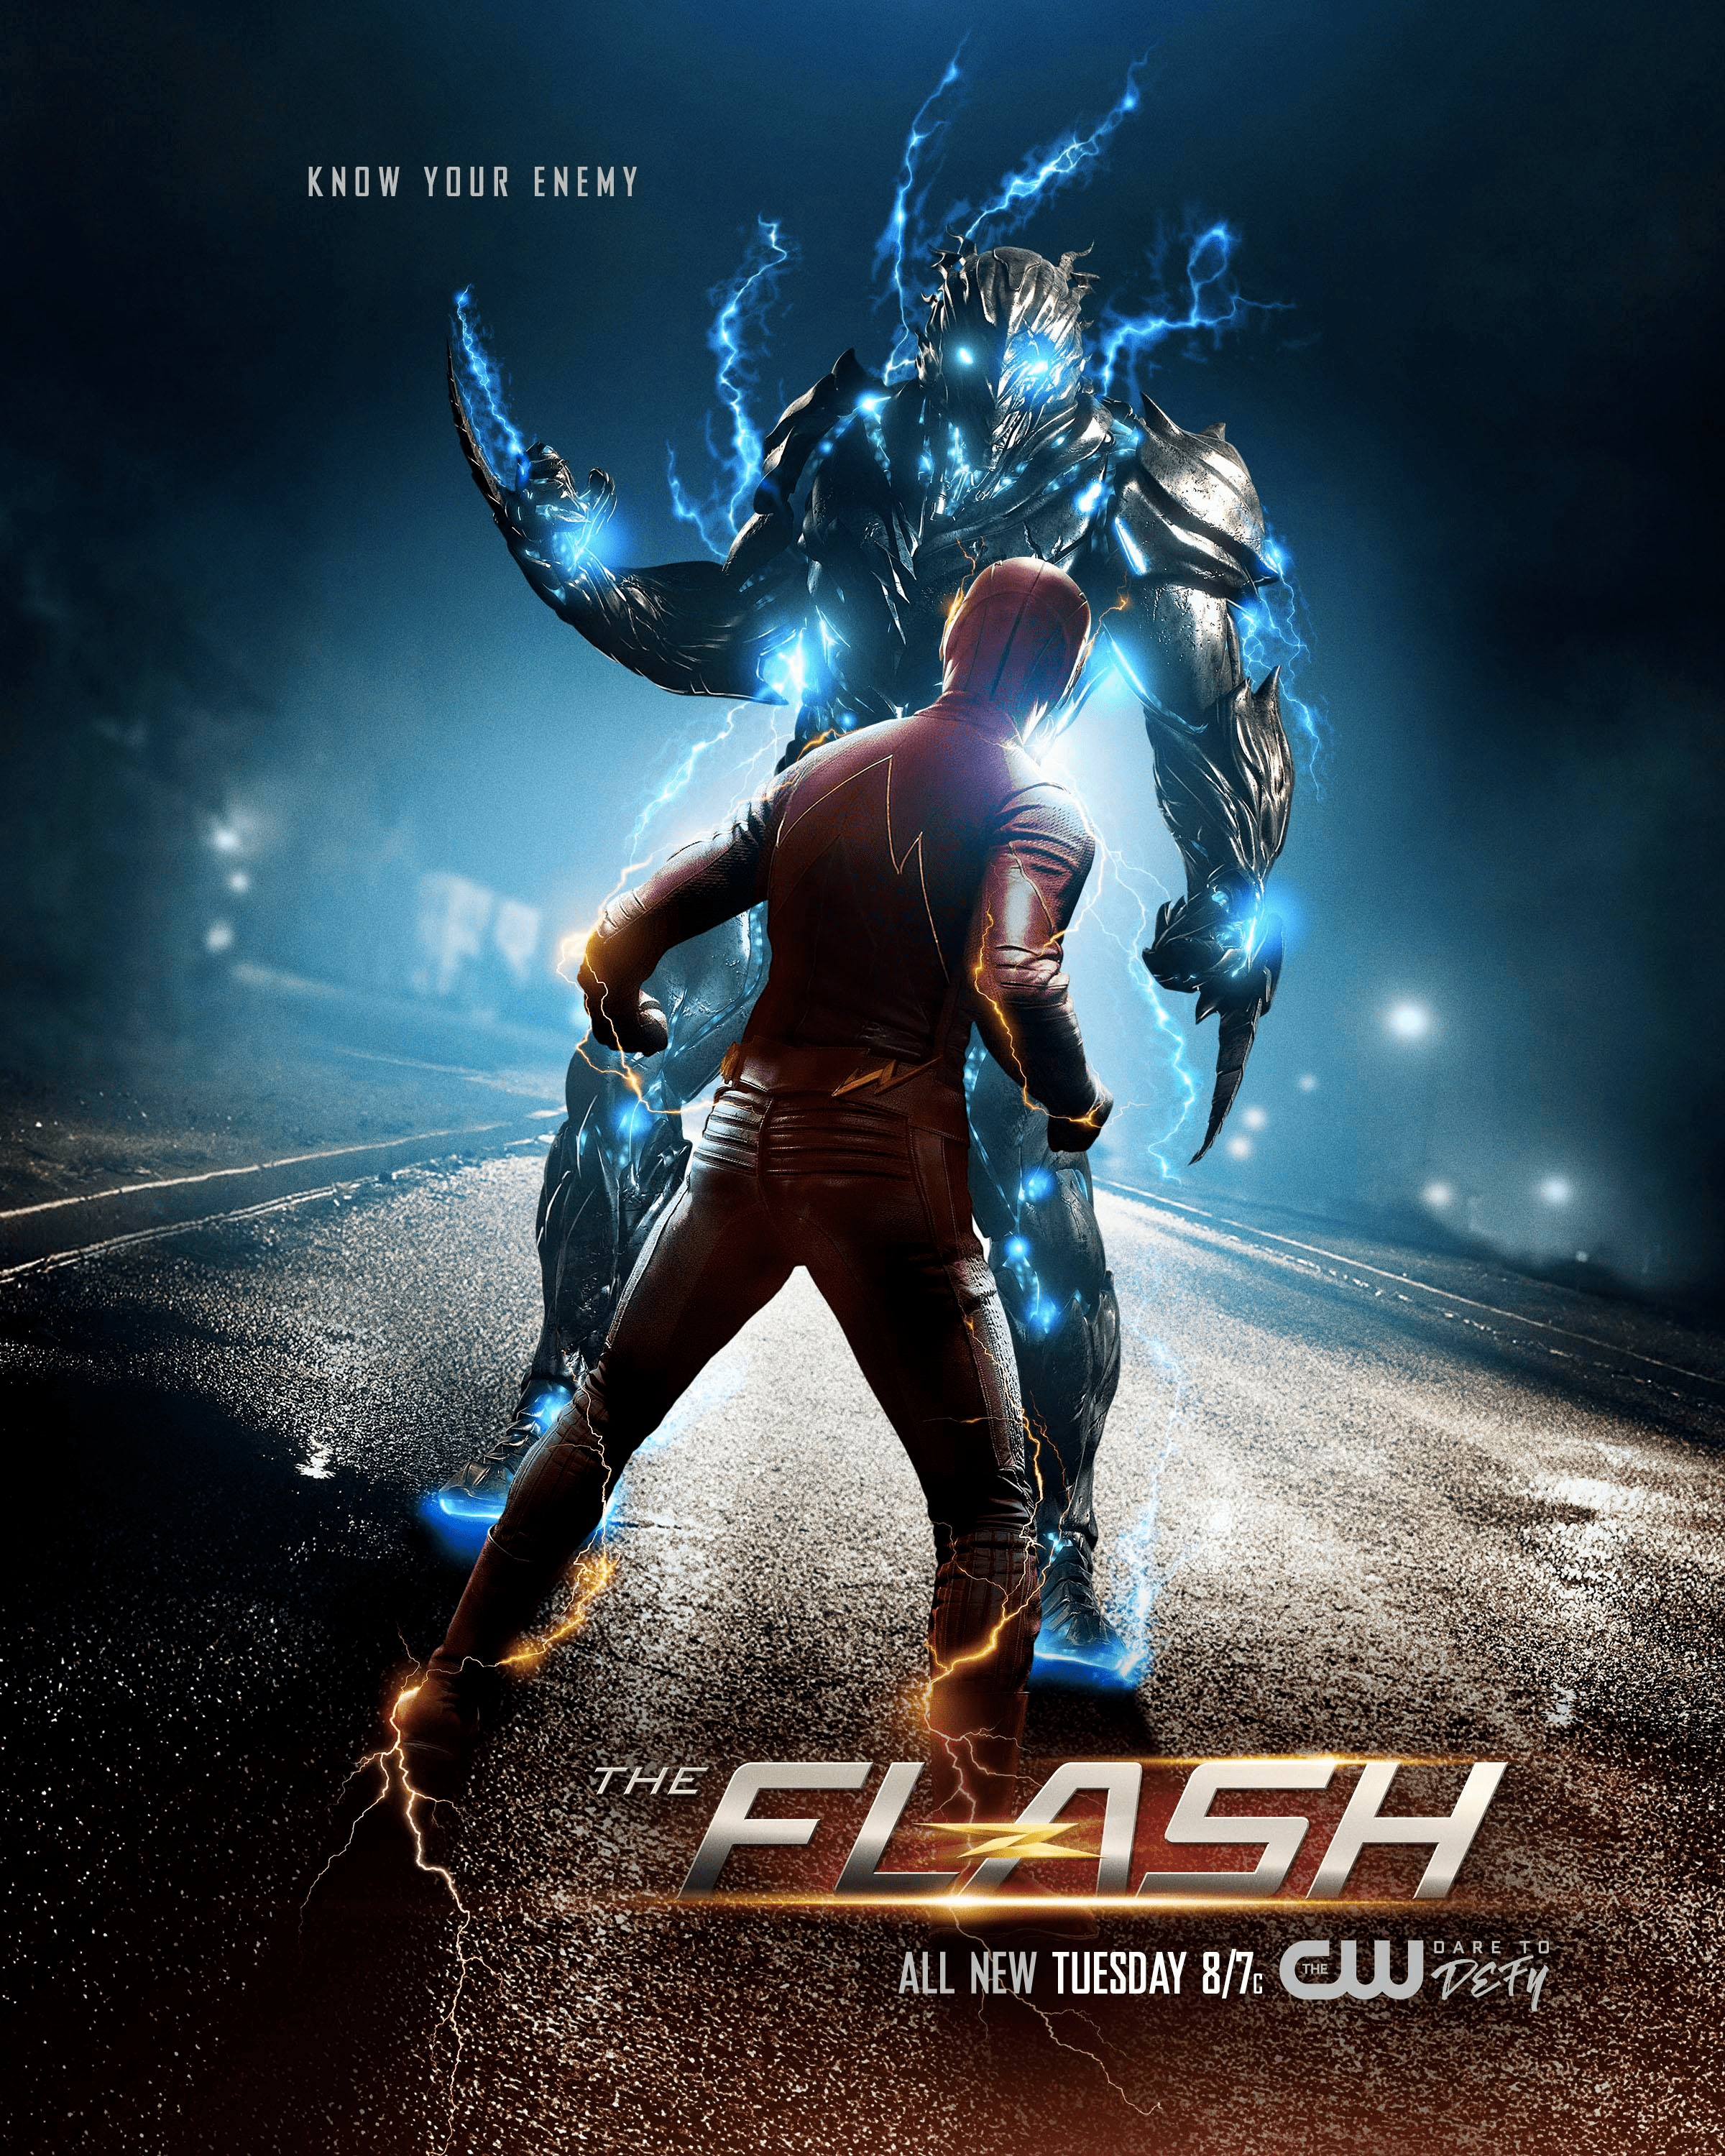 Top Image - The Flash season 3 poster - Know your enemy.png  @NC37